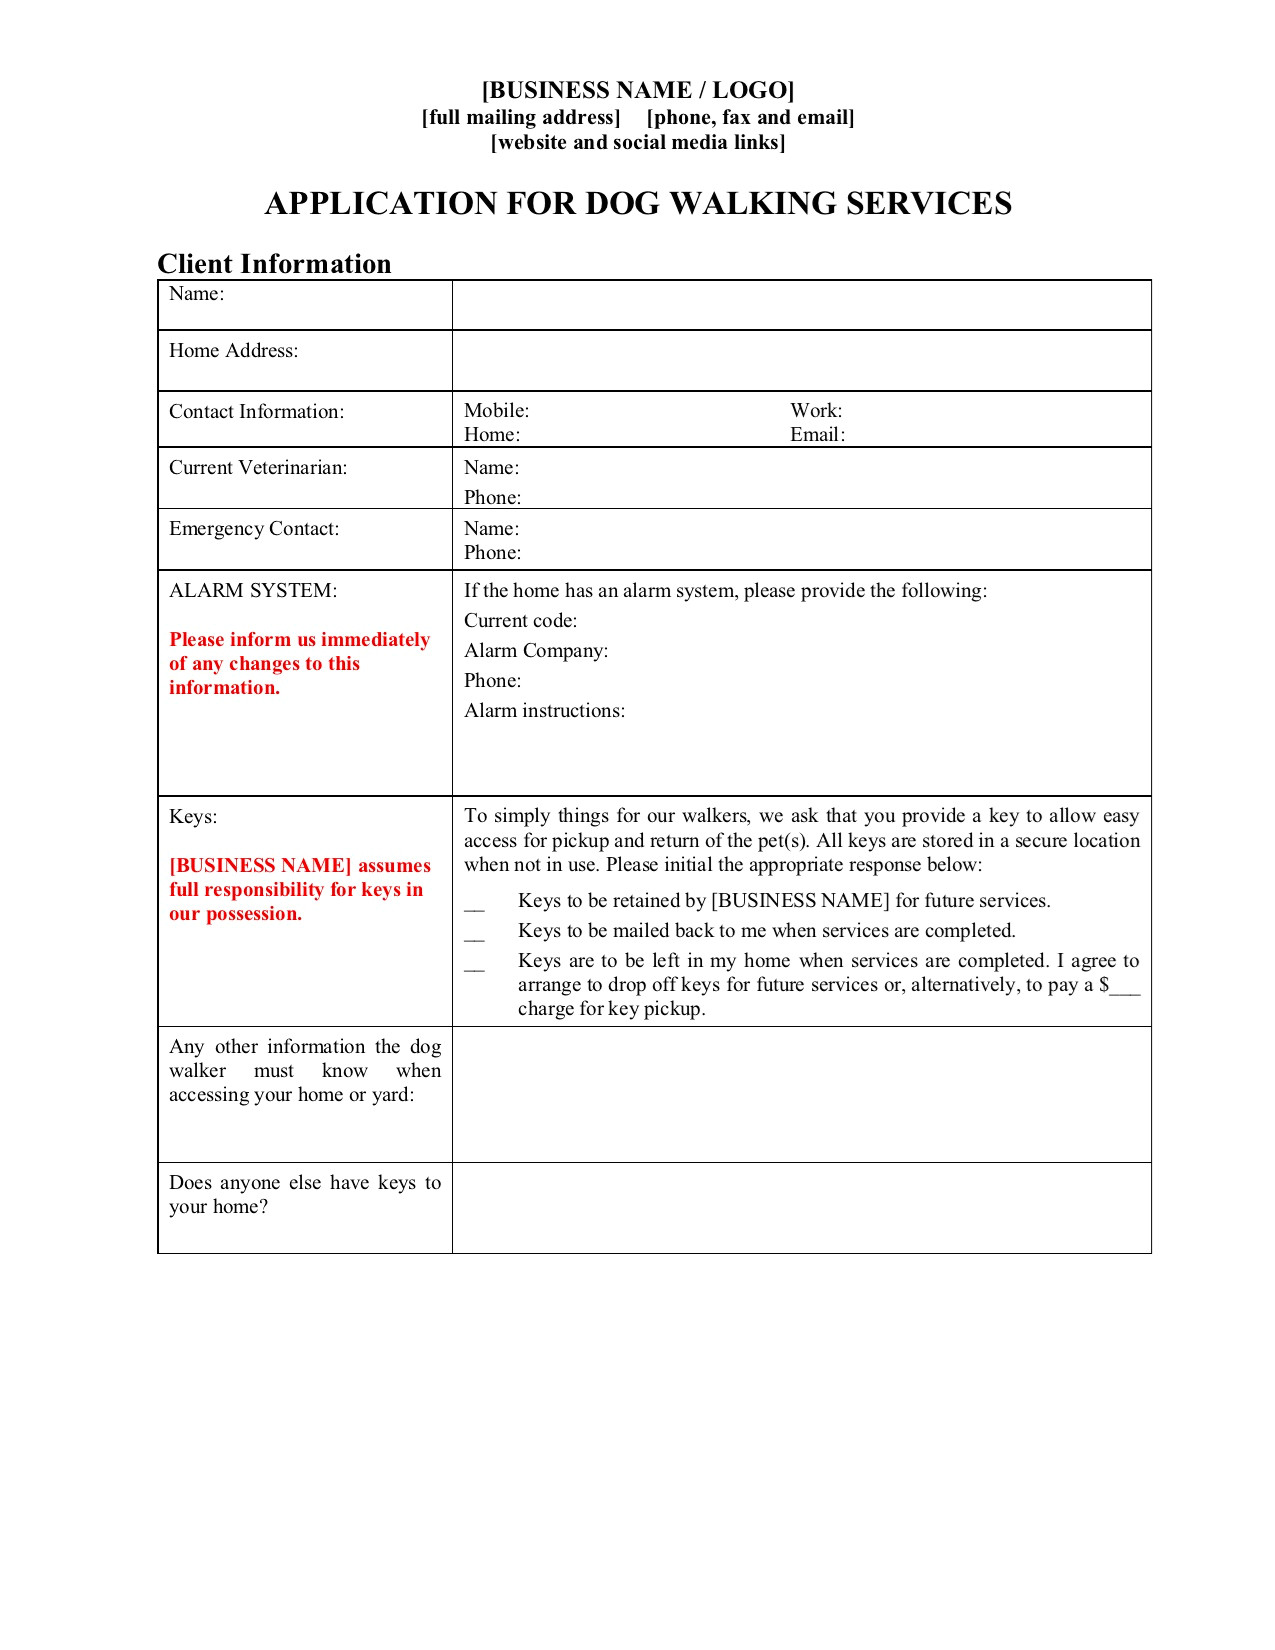 Dog Walking Contract Template Dog Walker Contract forms Package Legal forms and